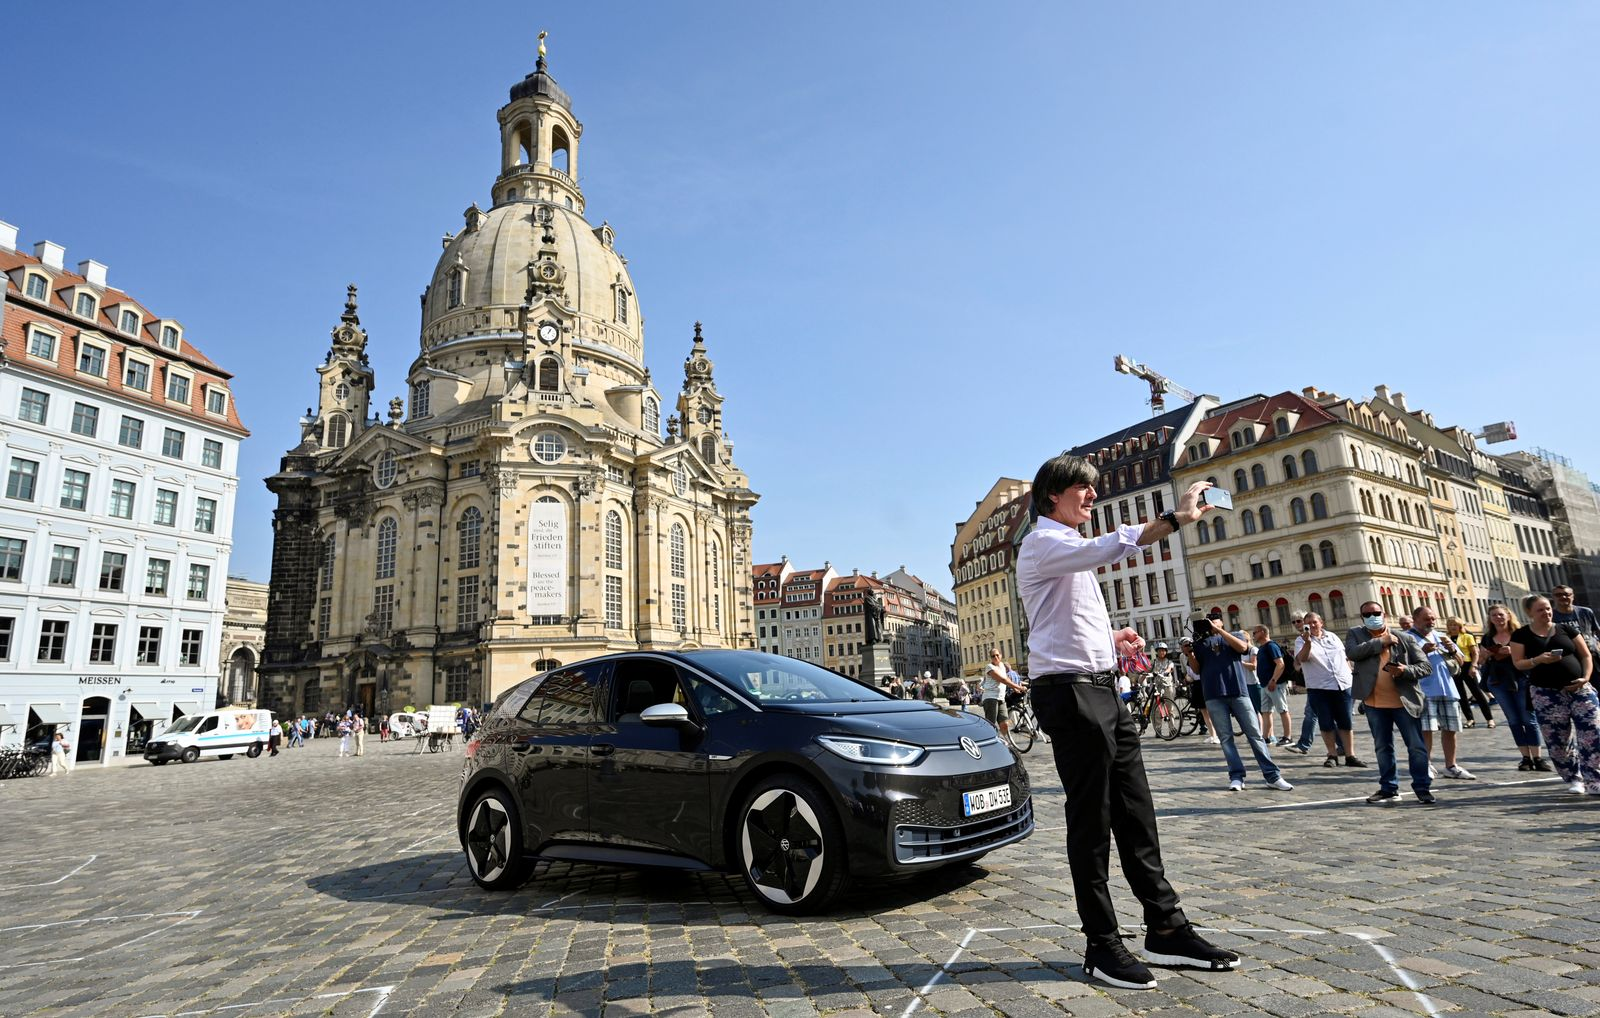 Volkswagen and brand ambassador Jogi Loew kick off the production of all-electric model ID.3